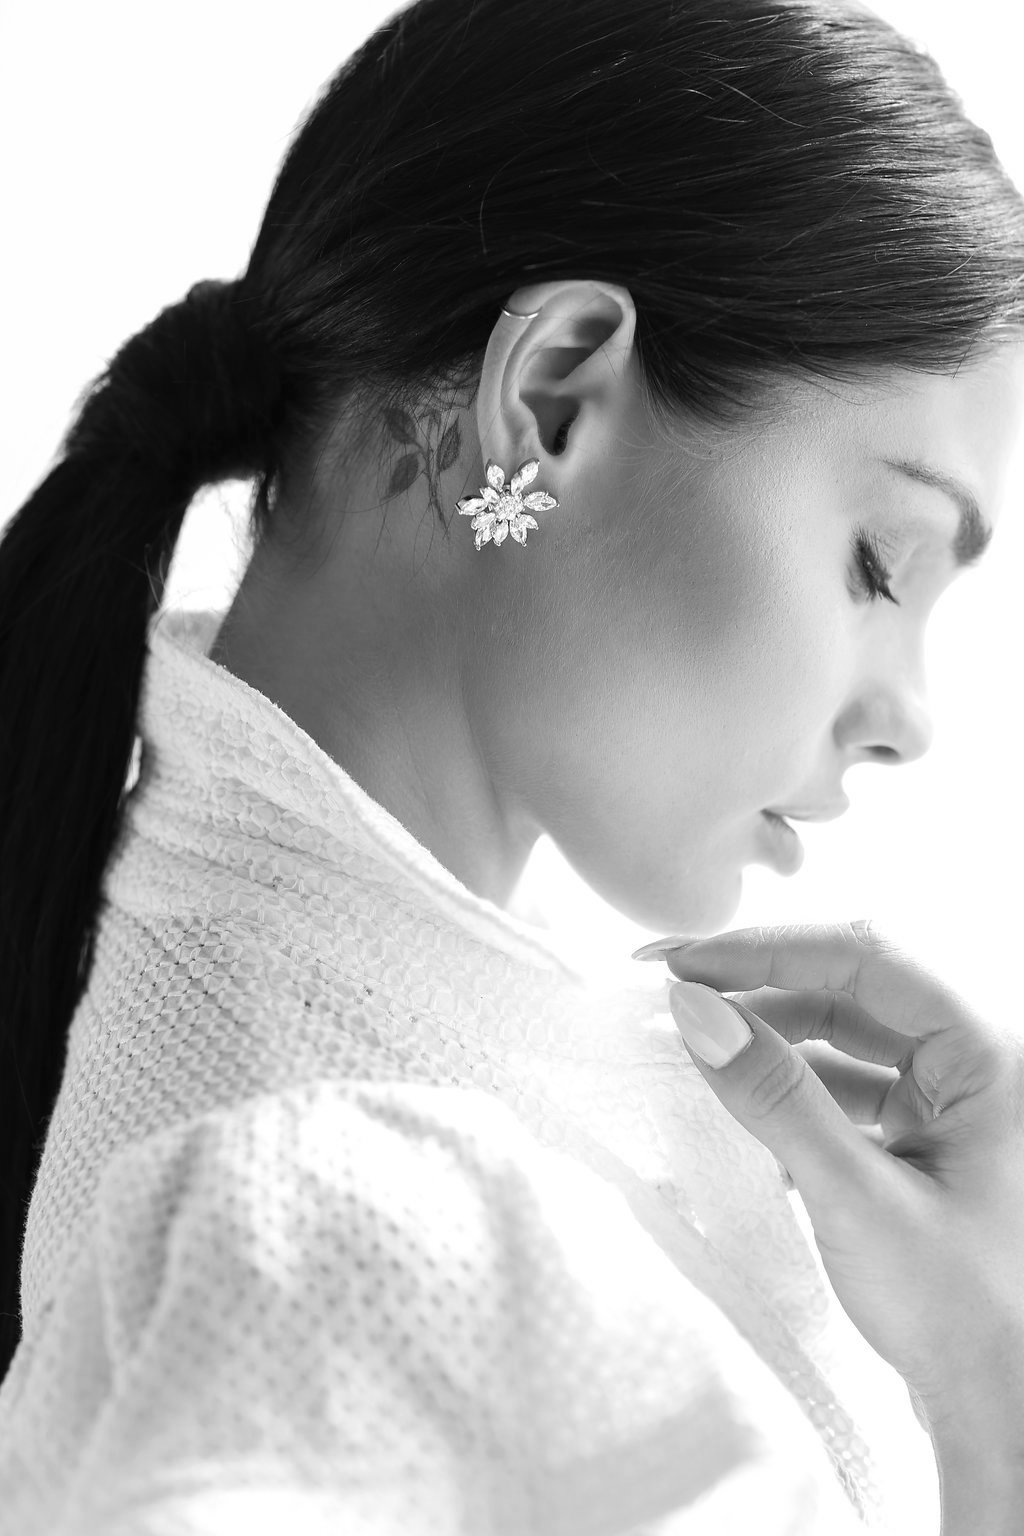 Maison Roe Bridal Accessories featured on LOVE FIND CO. Bridal Directory